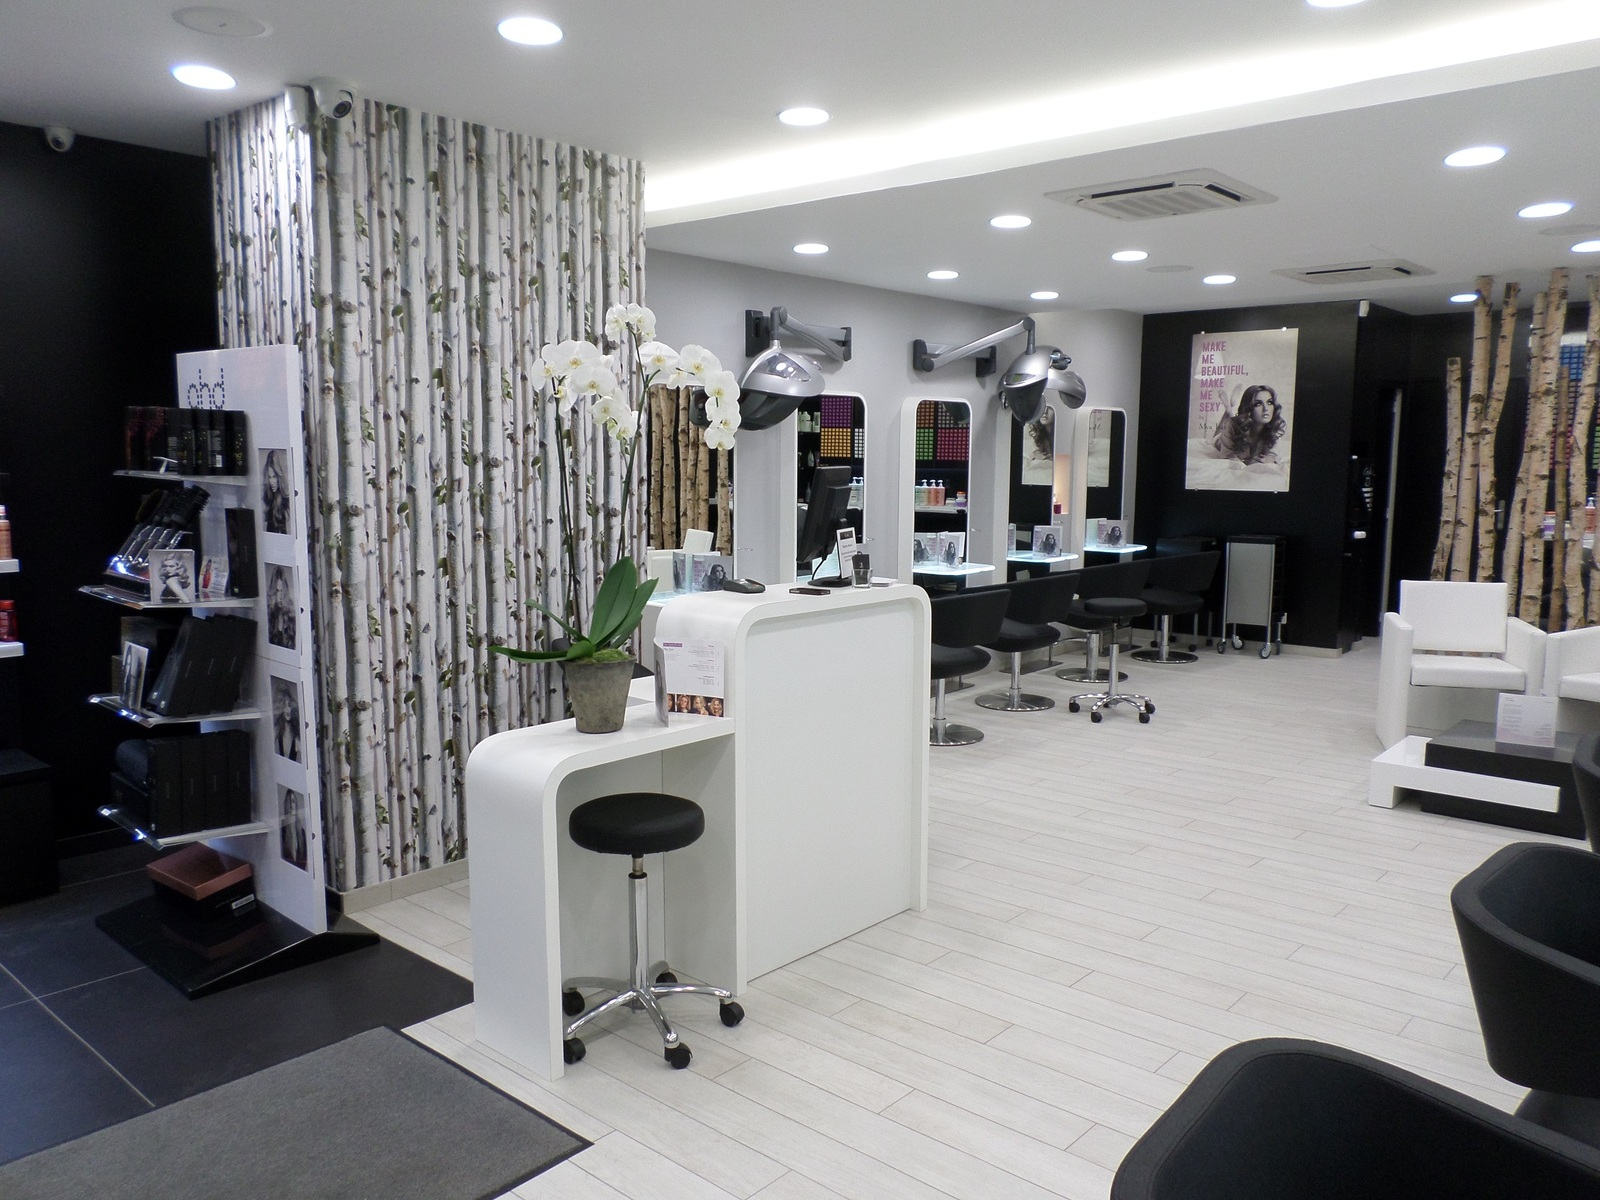 agencement salons de coiffure 53 49 44 35 72. Black Bedroom Furniture Sets. Home Design Ideas